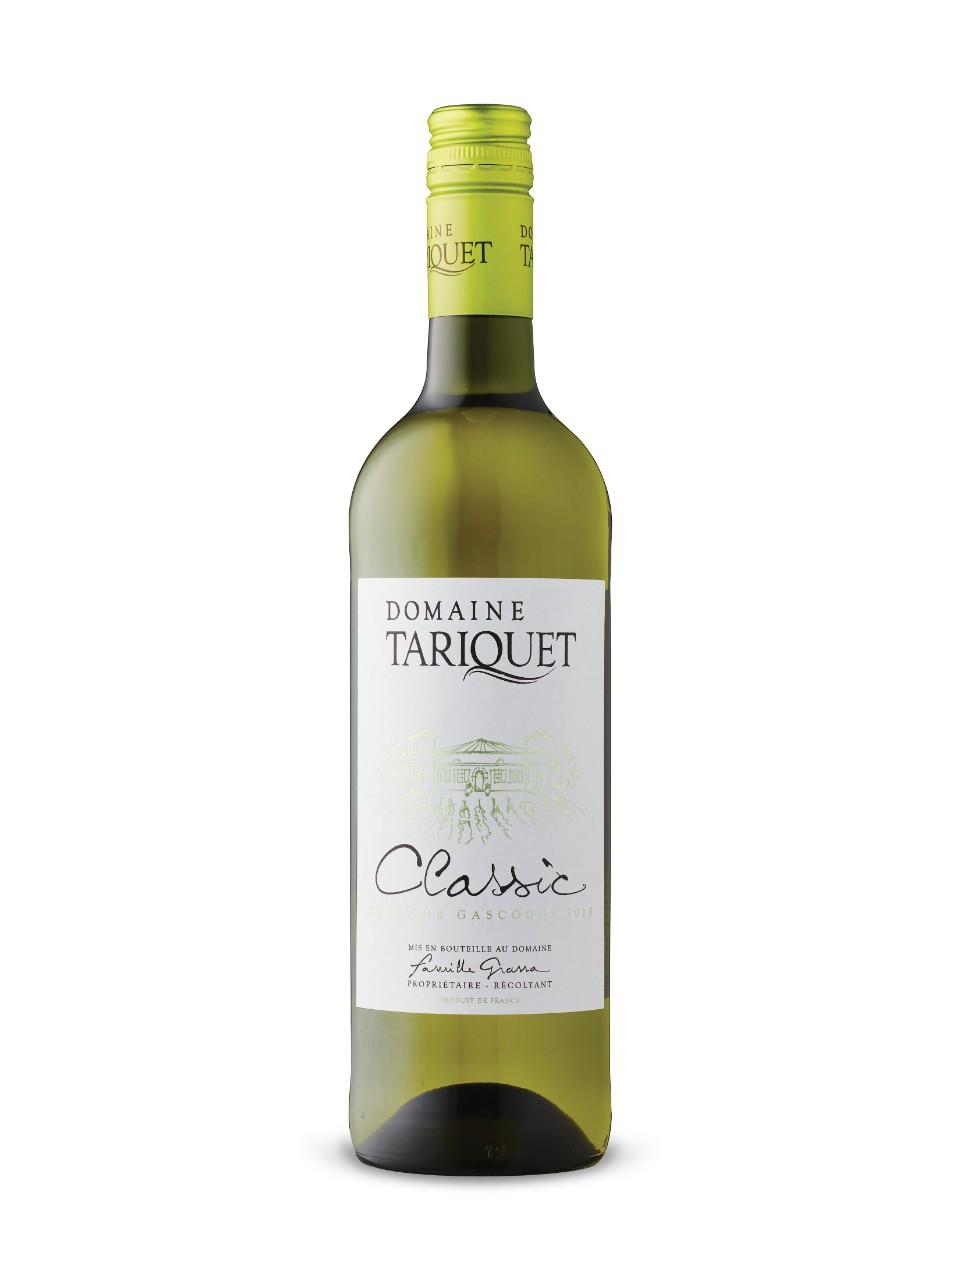 Domaine Tariquet Classic Blanc 2019 from LCBO